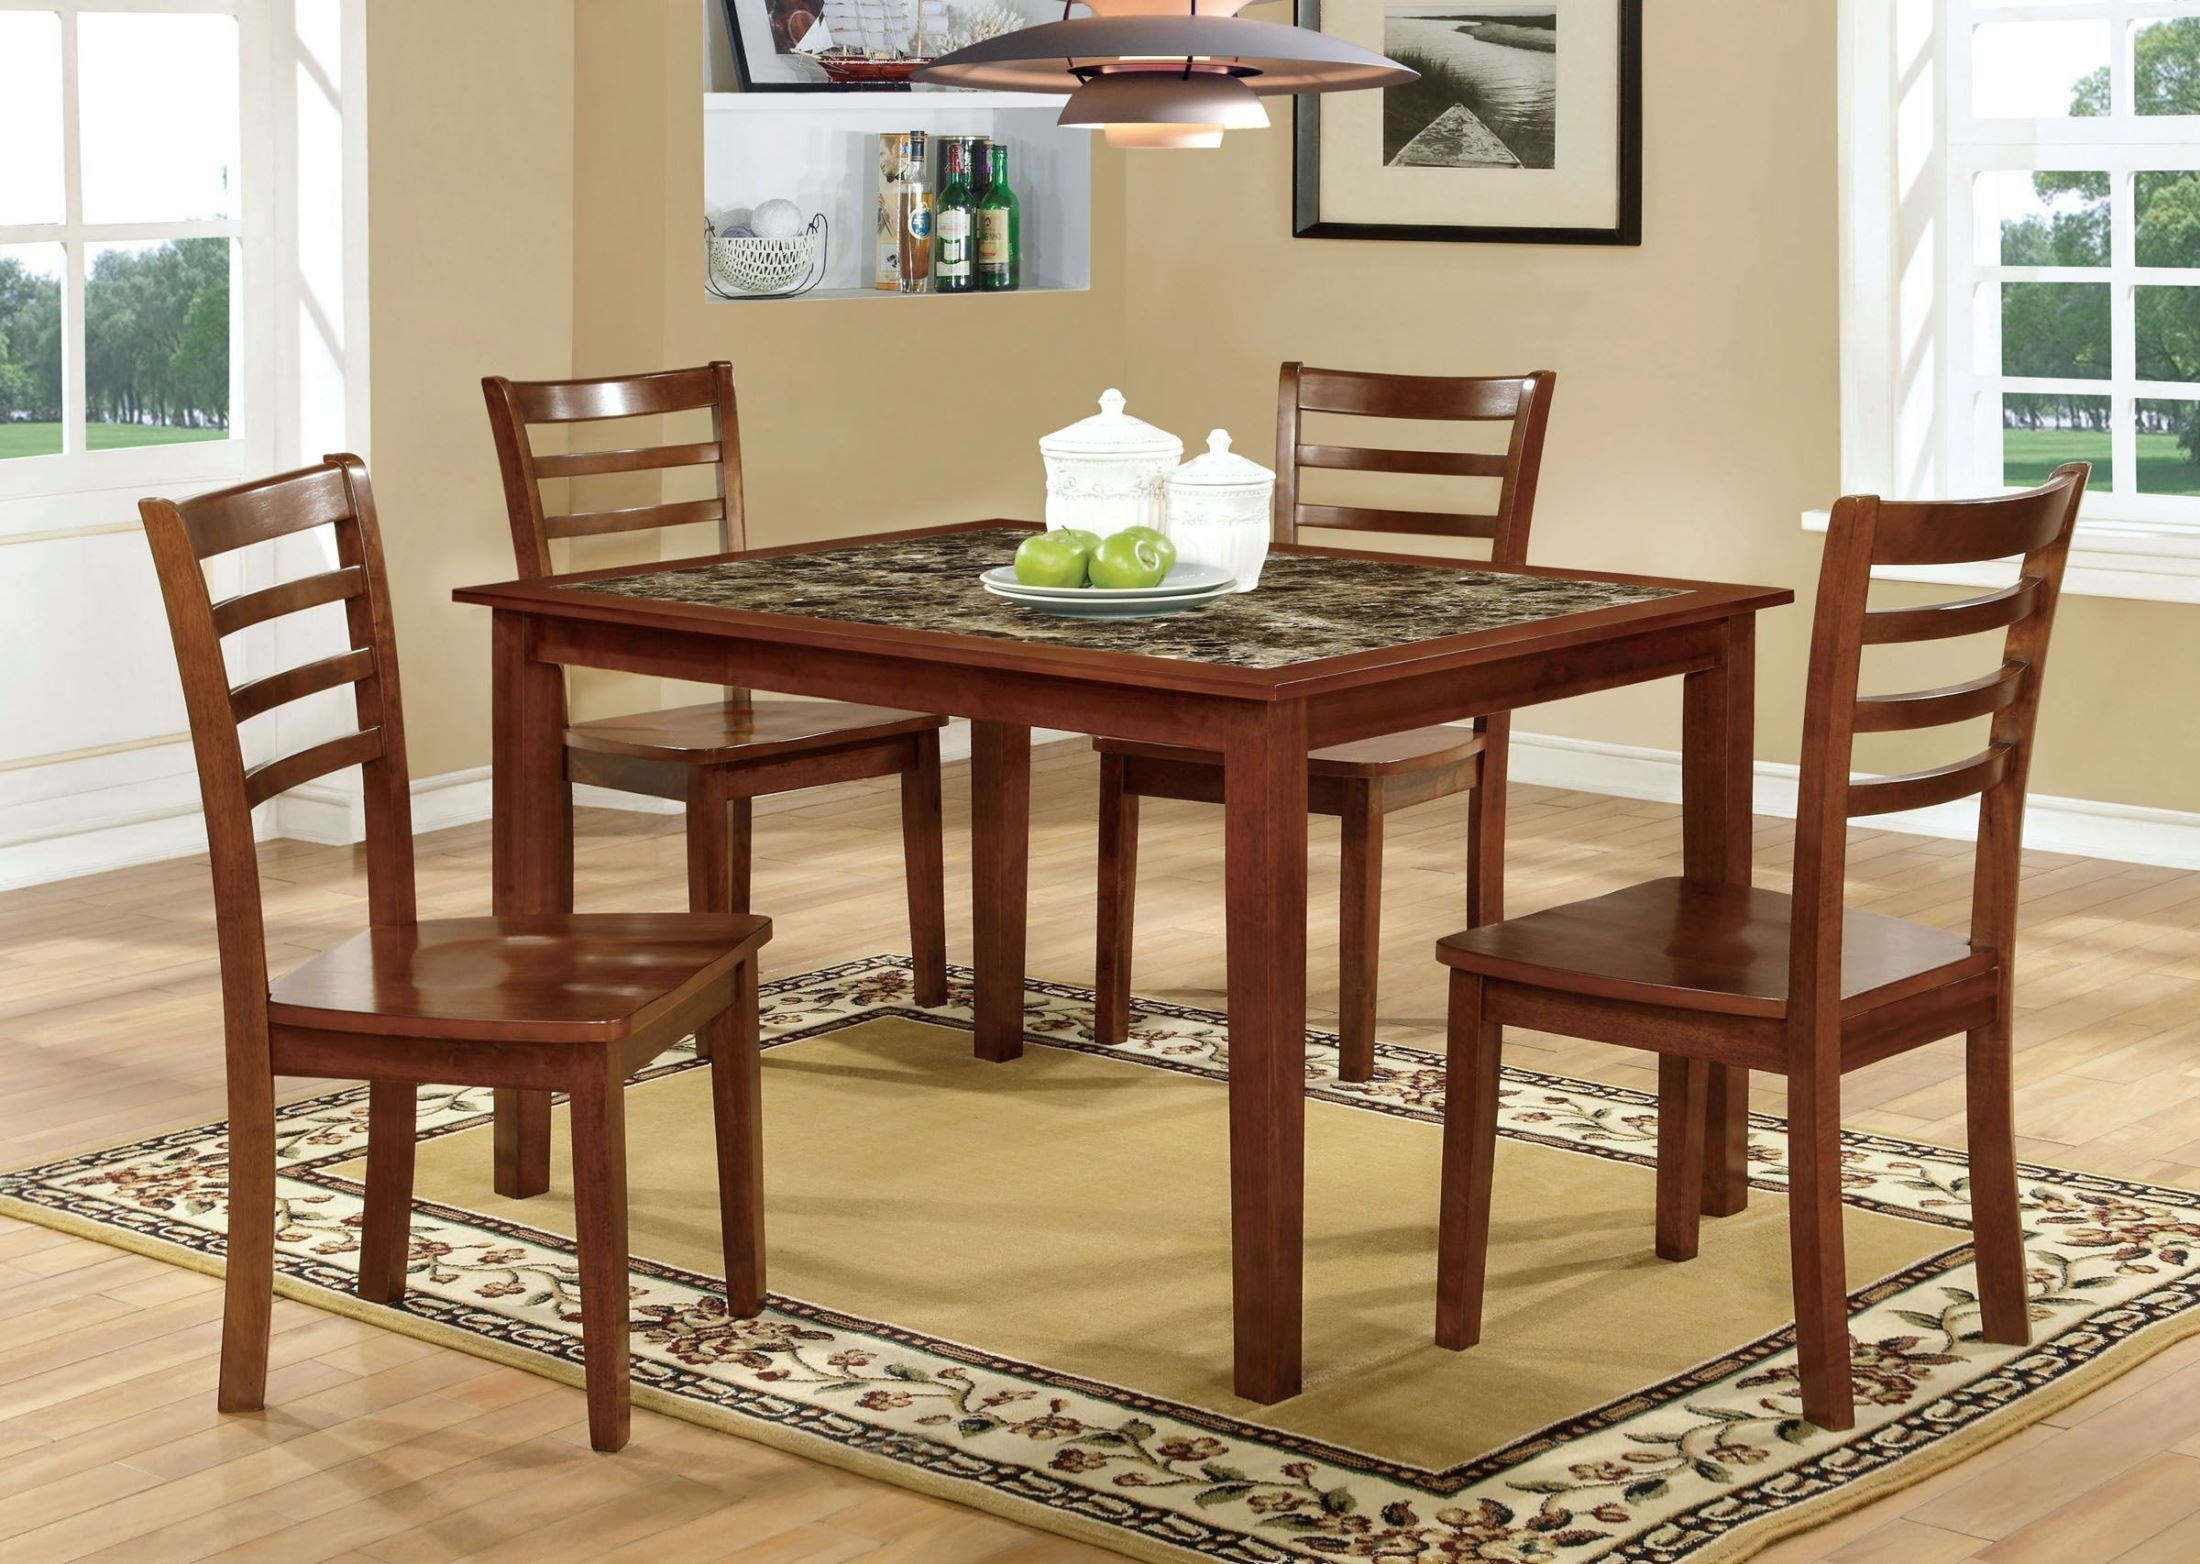 Fordville i antique oak 5 piece dining table set from for Dining at at t center